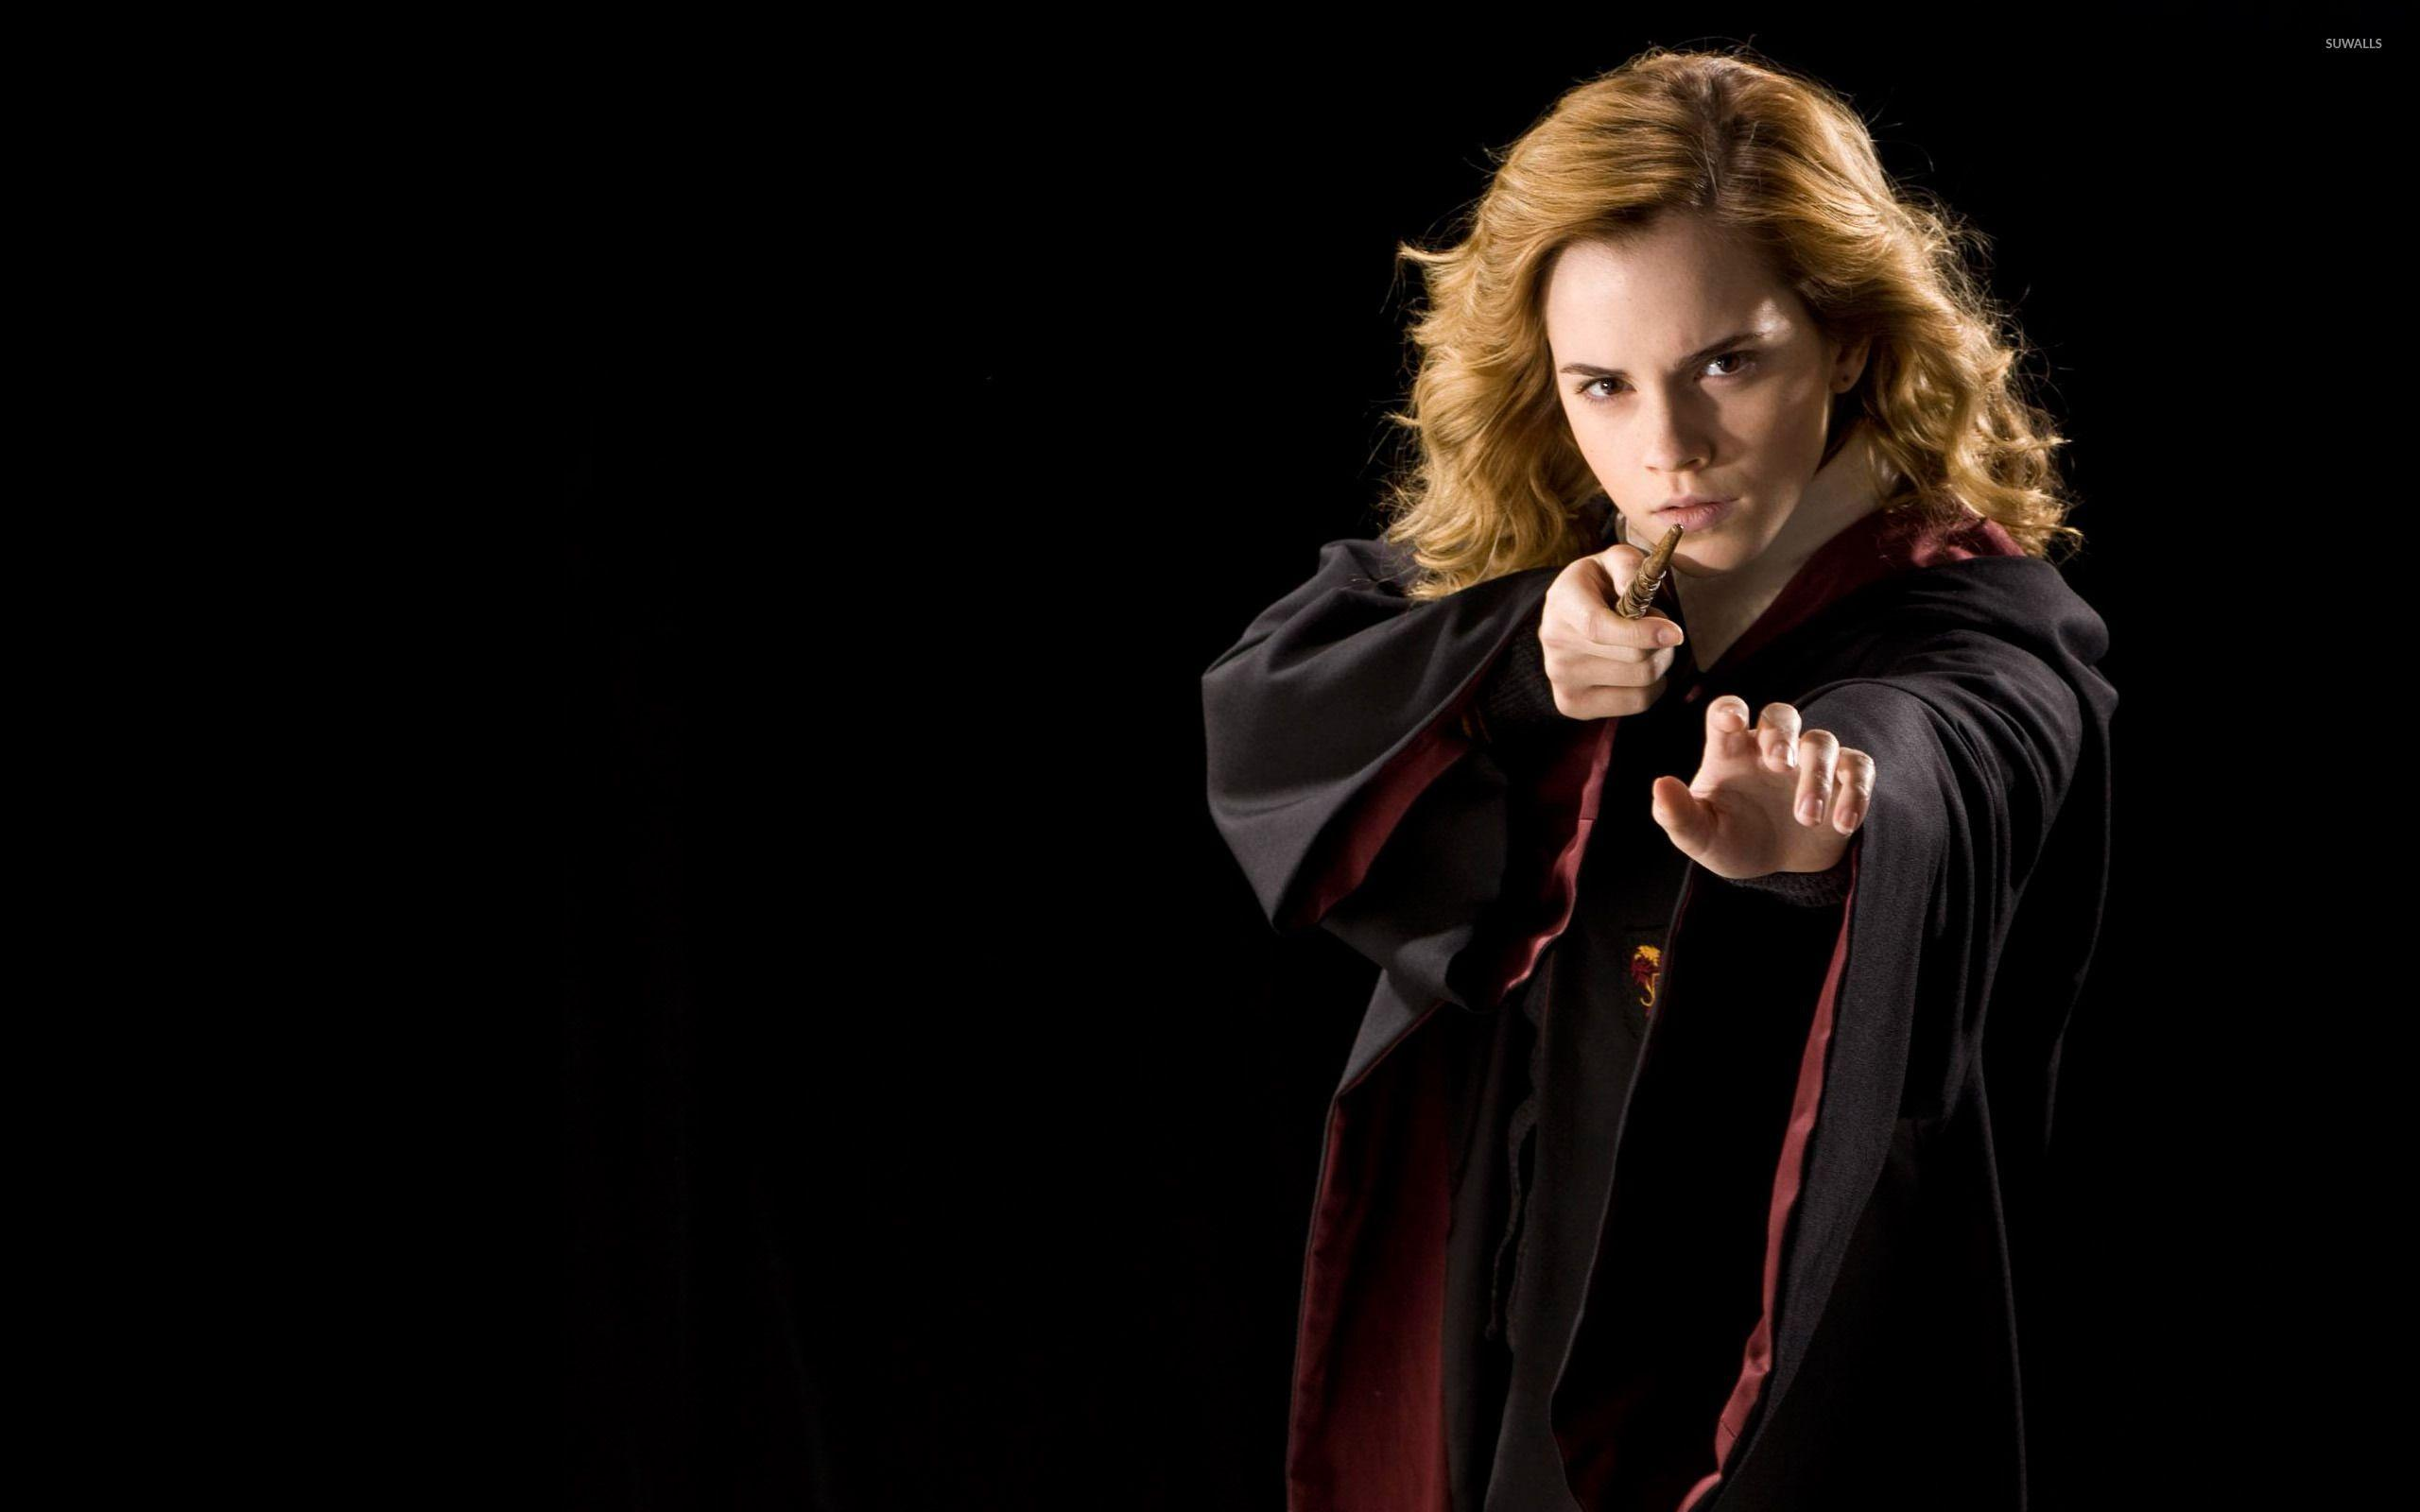 Hermione Granger Backgrounds Harry Potter Themes